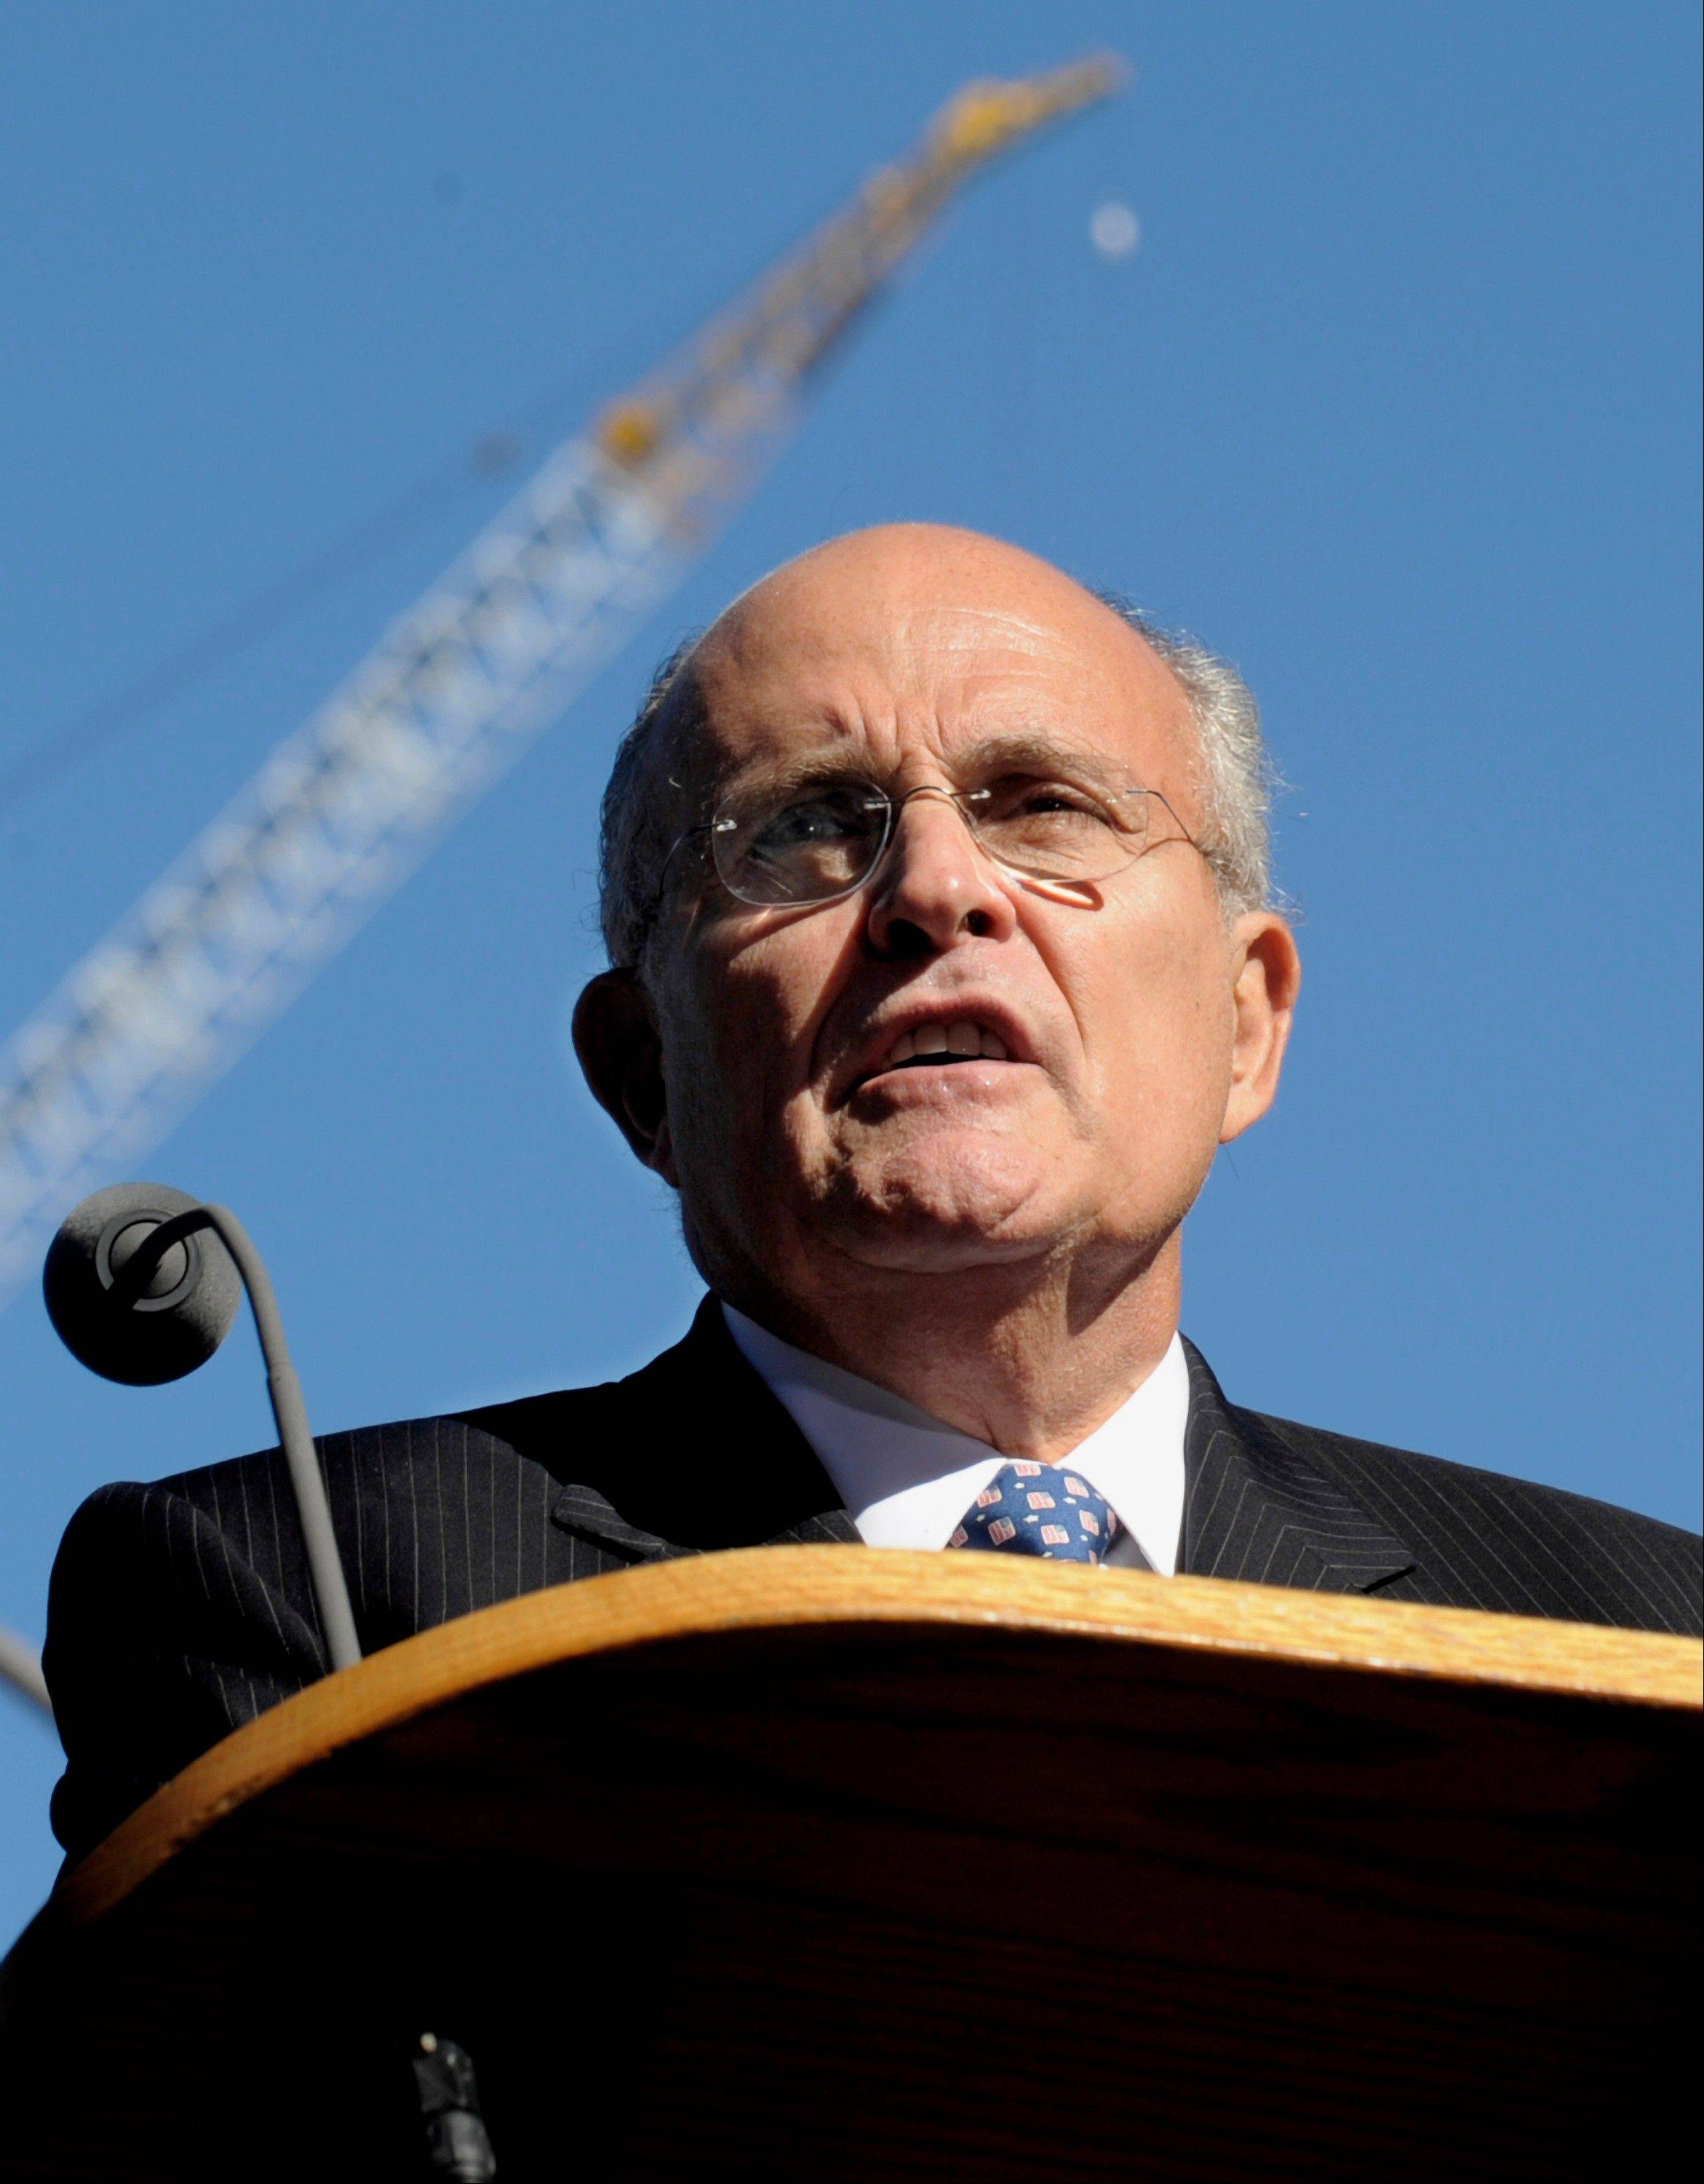 Former New York City Mayor Rudolph Giuliani reads a poem during a memorial service commemorating the ninth anniversary of the Sept. 11 terrorist attacks on the World Trade Center in New York i 2010.